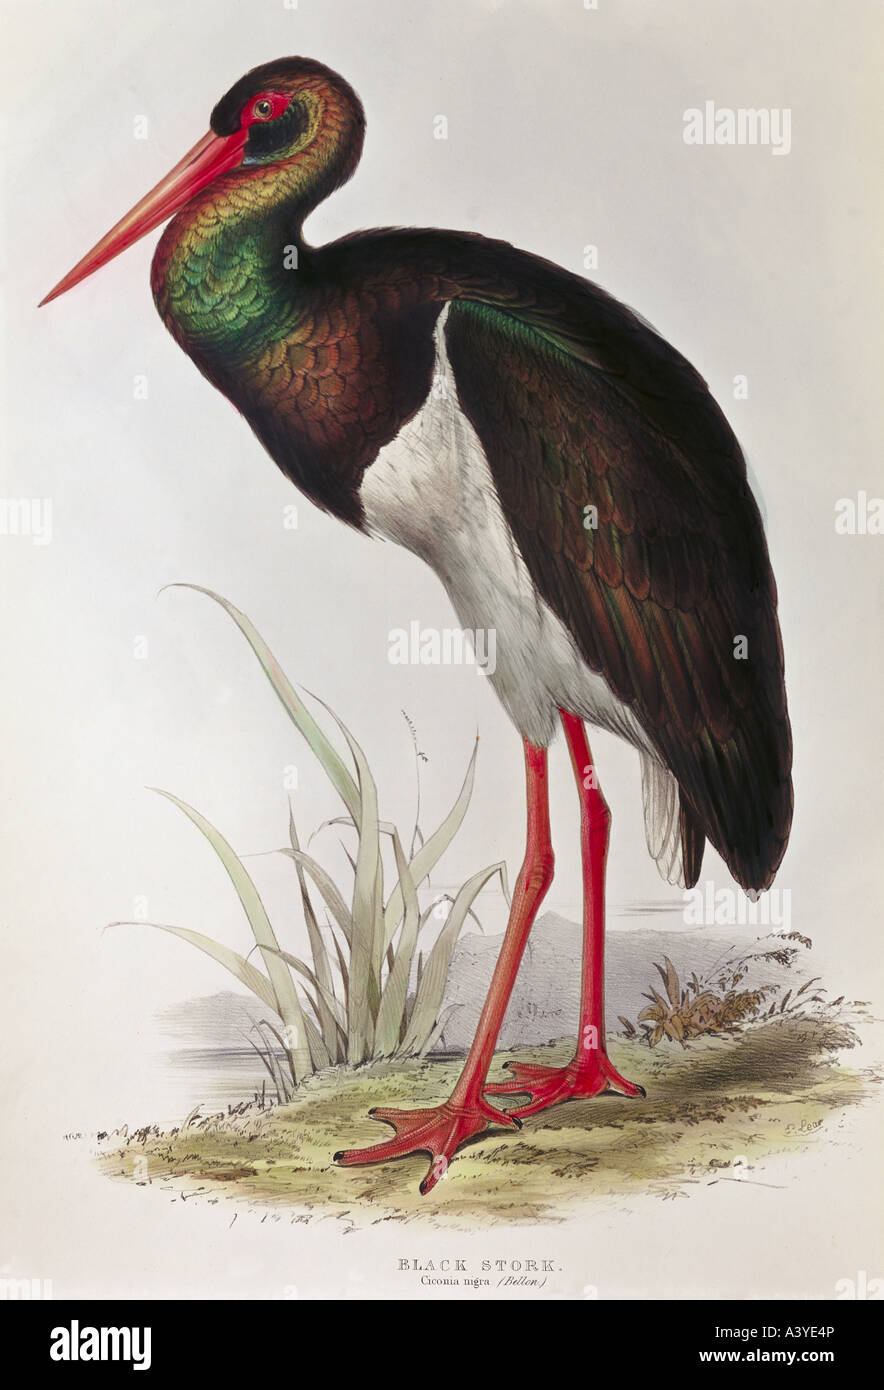 zoology / animal, avian / bird, ciconiidae, black stork, (ciconia nigra), colour lithograph, by Edward Lear, from Stock Photo